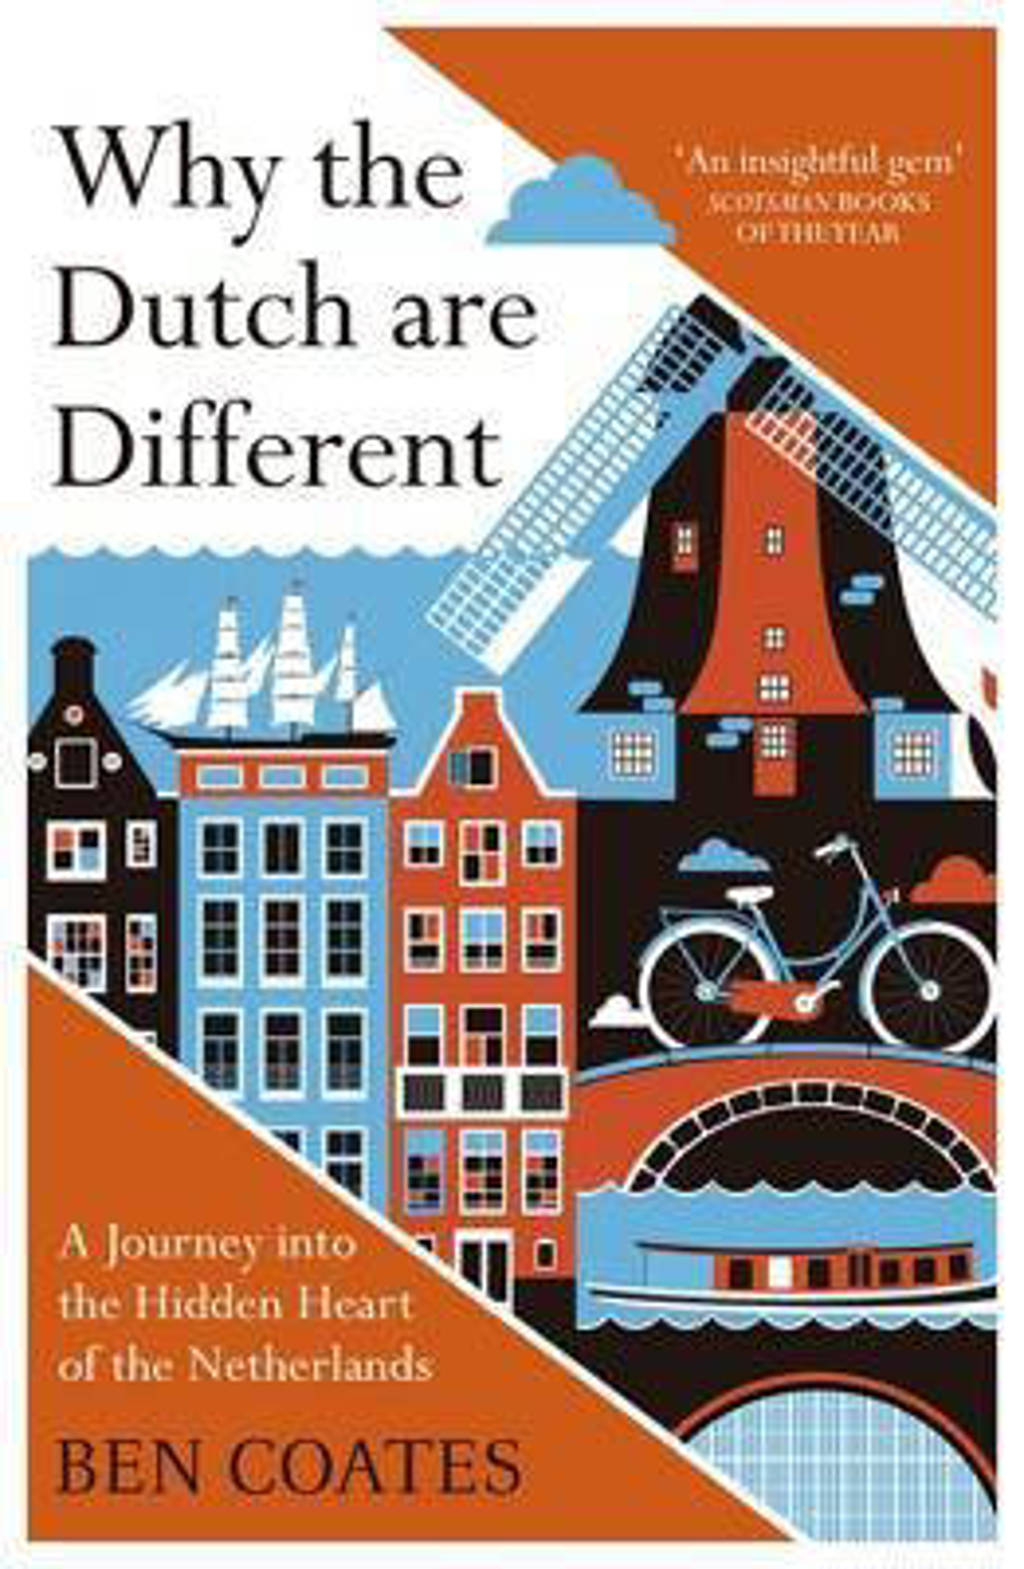 Why the Dutch are Different - Coates, Ben